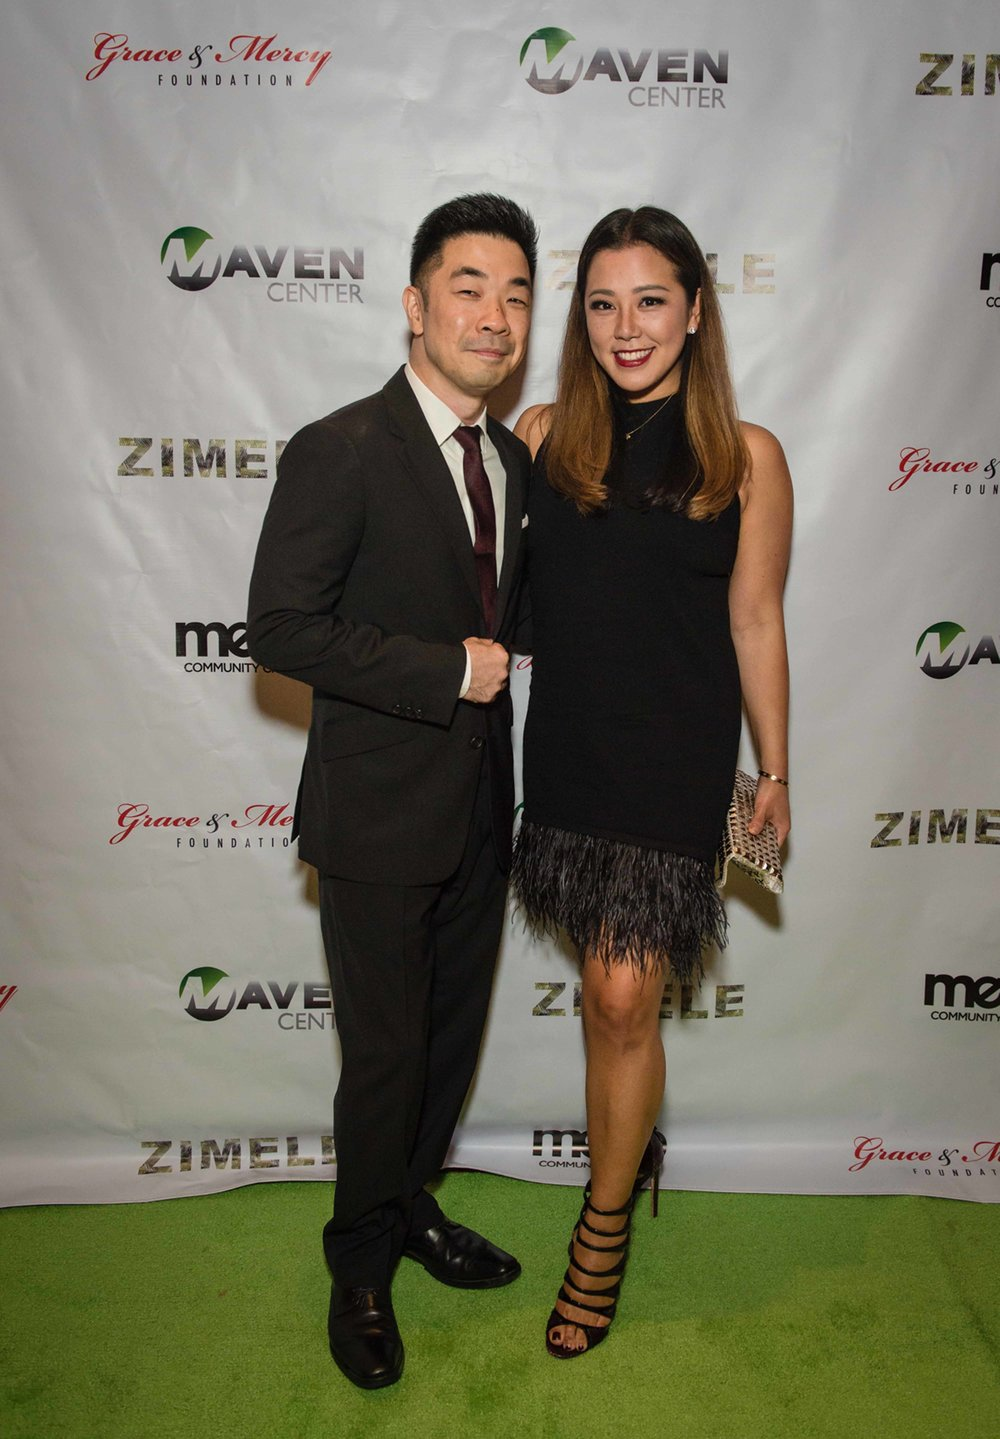 2017-10-21 Zimele USA 6th Annual Gala - Maritime Parc - Jersey City NJ_0038.jpg